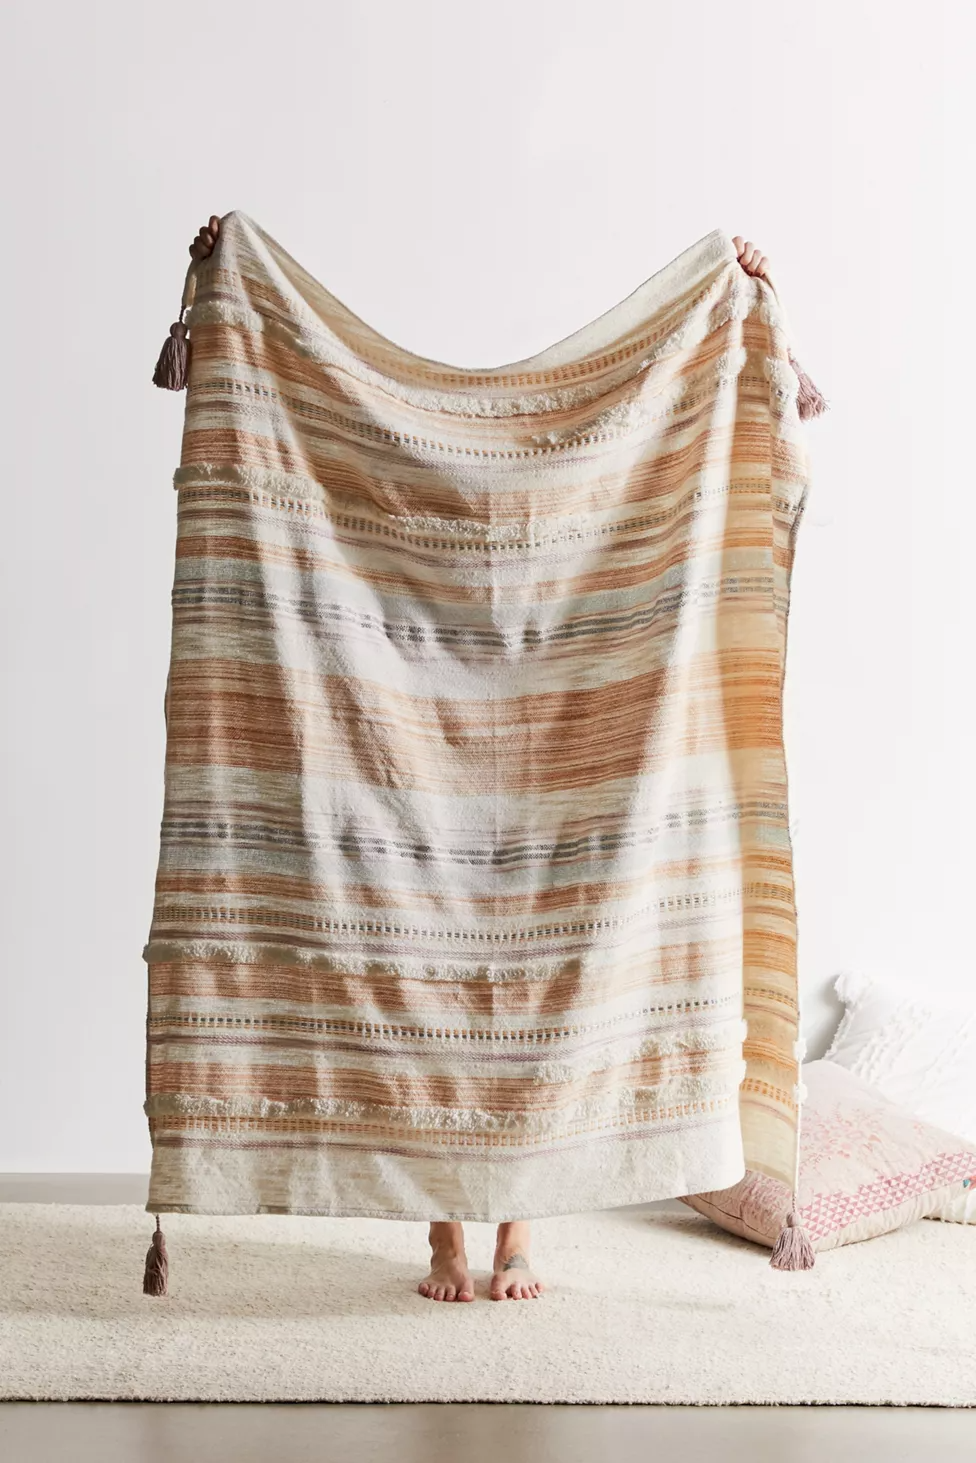 Vakker Throw Blanket Urban Outfitters Canada In 2020 Woven Throw Blanket Throw Blanket Boho Throw Blanket